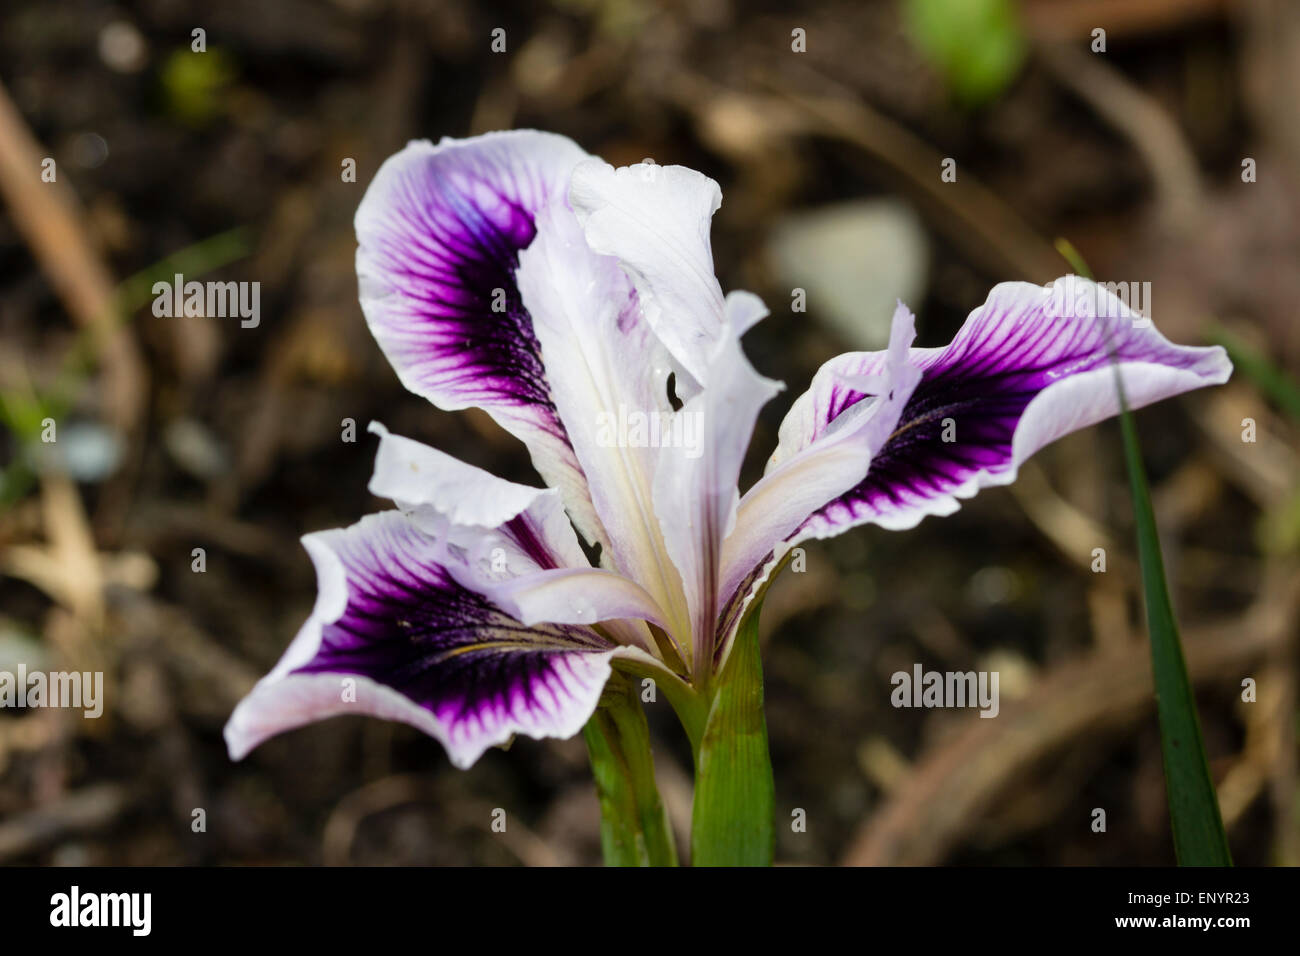 Flower of the Mitchell award wining Pacific Coast hybrid, Iris douglasiana 'Amiguita' - Stock Image